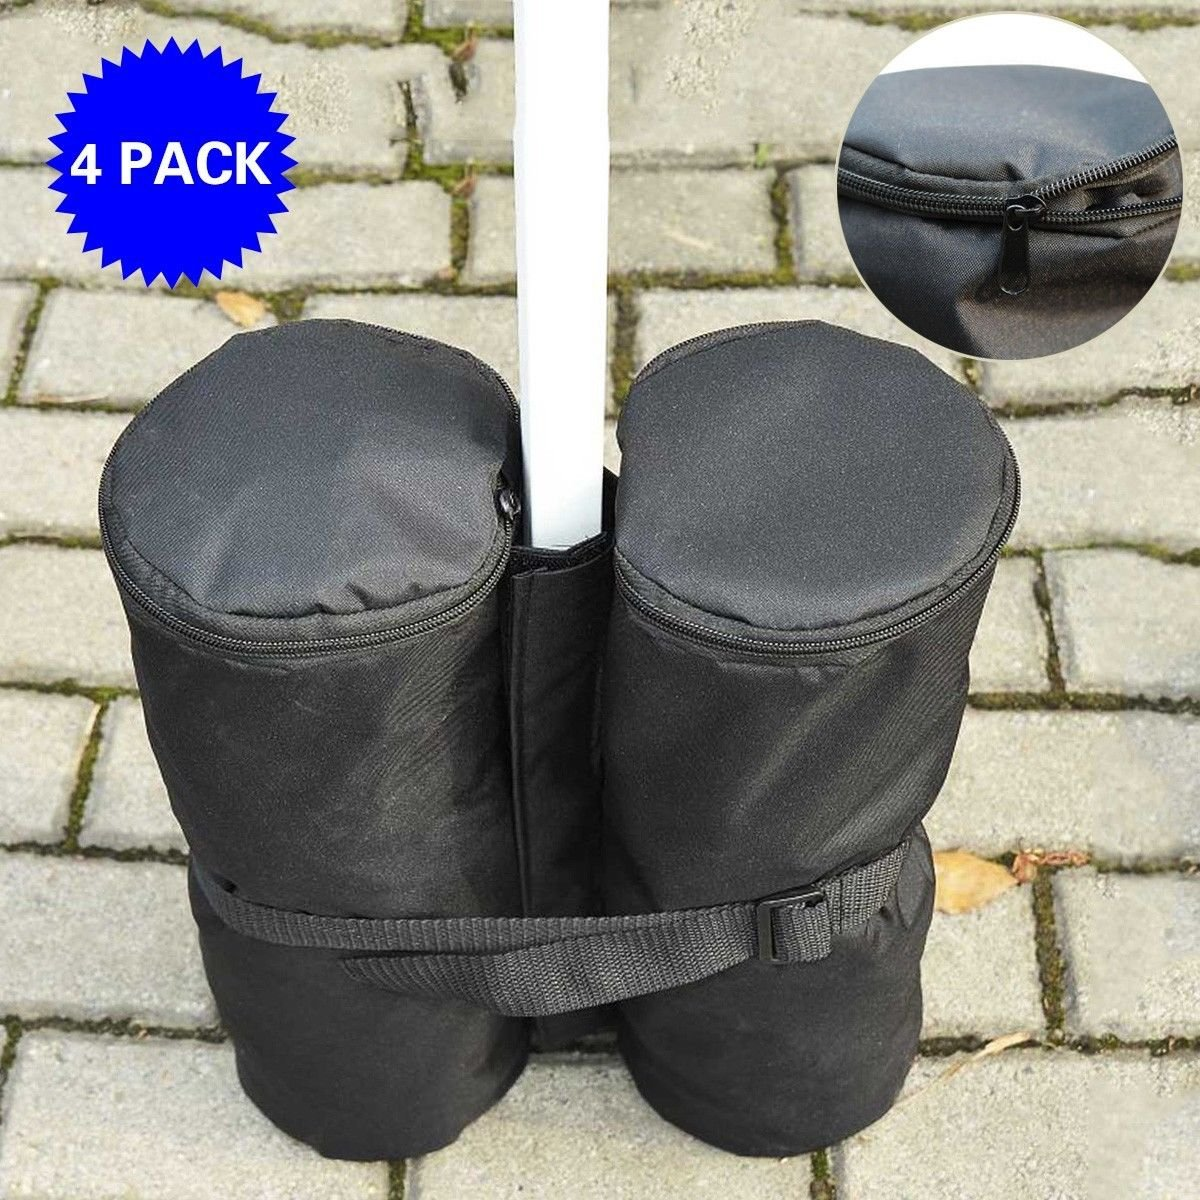 4pc Weight Sand Anchor Bags for Outdoor Canopy Party Gazebo Pop up Tent Pole